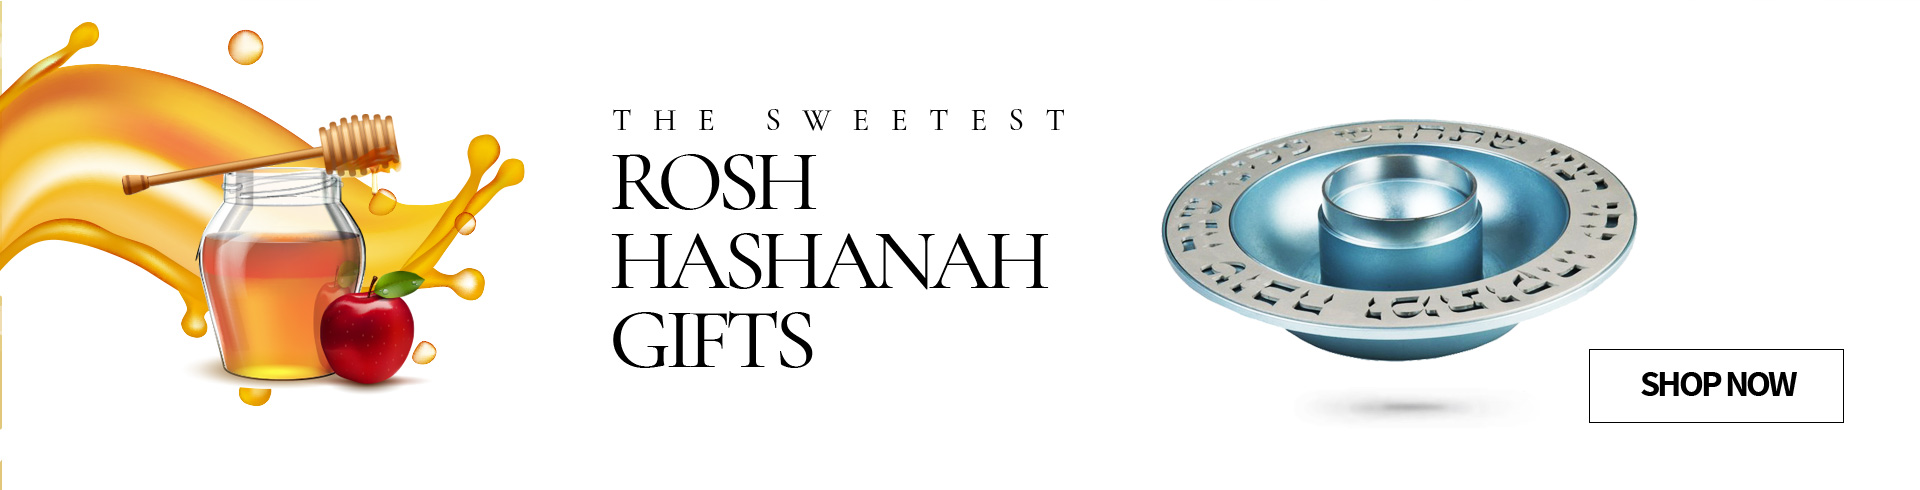 The Sweetest Rosh Hashanah Gifts – Desktop Banner